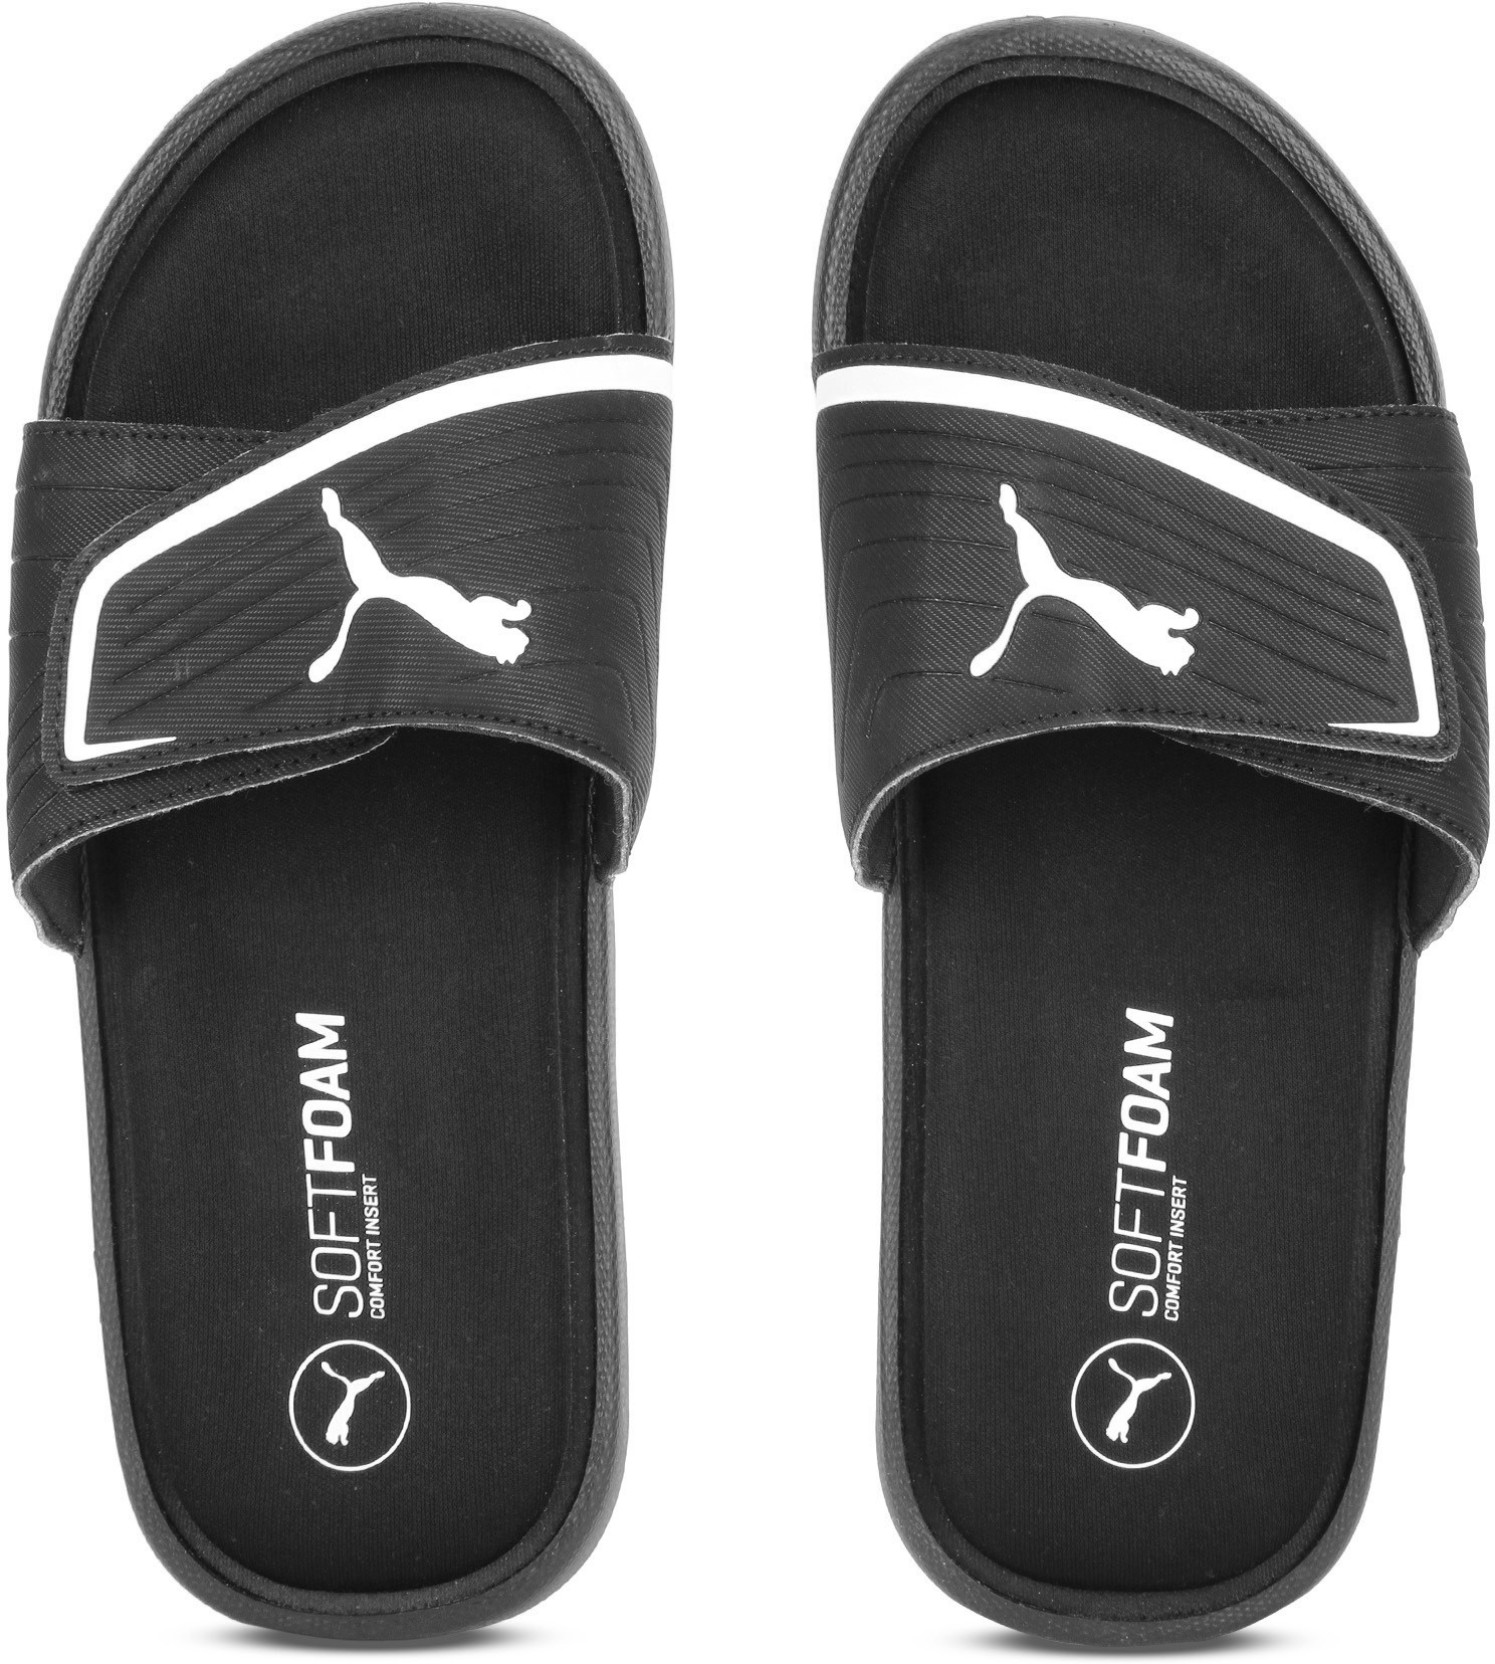 f2615dcaf208 Puma Starcat Sfoam Slides - Buy Puma Black-Puma White Color Puma ...